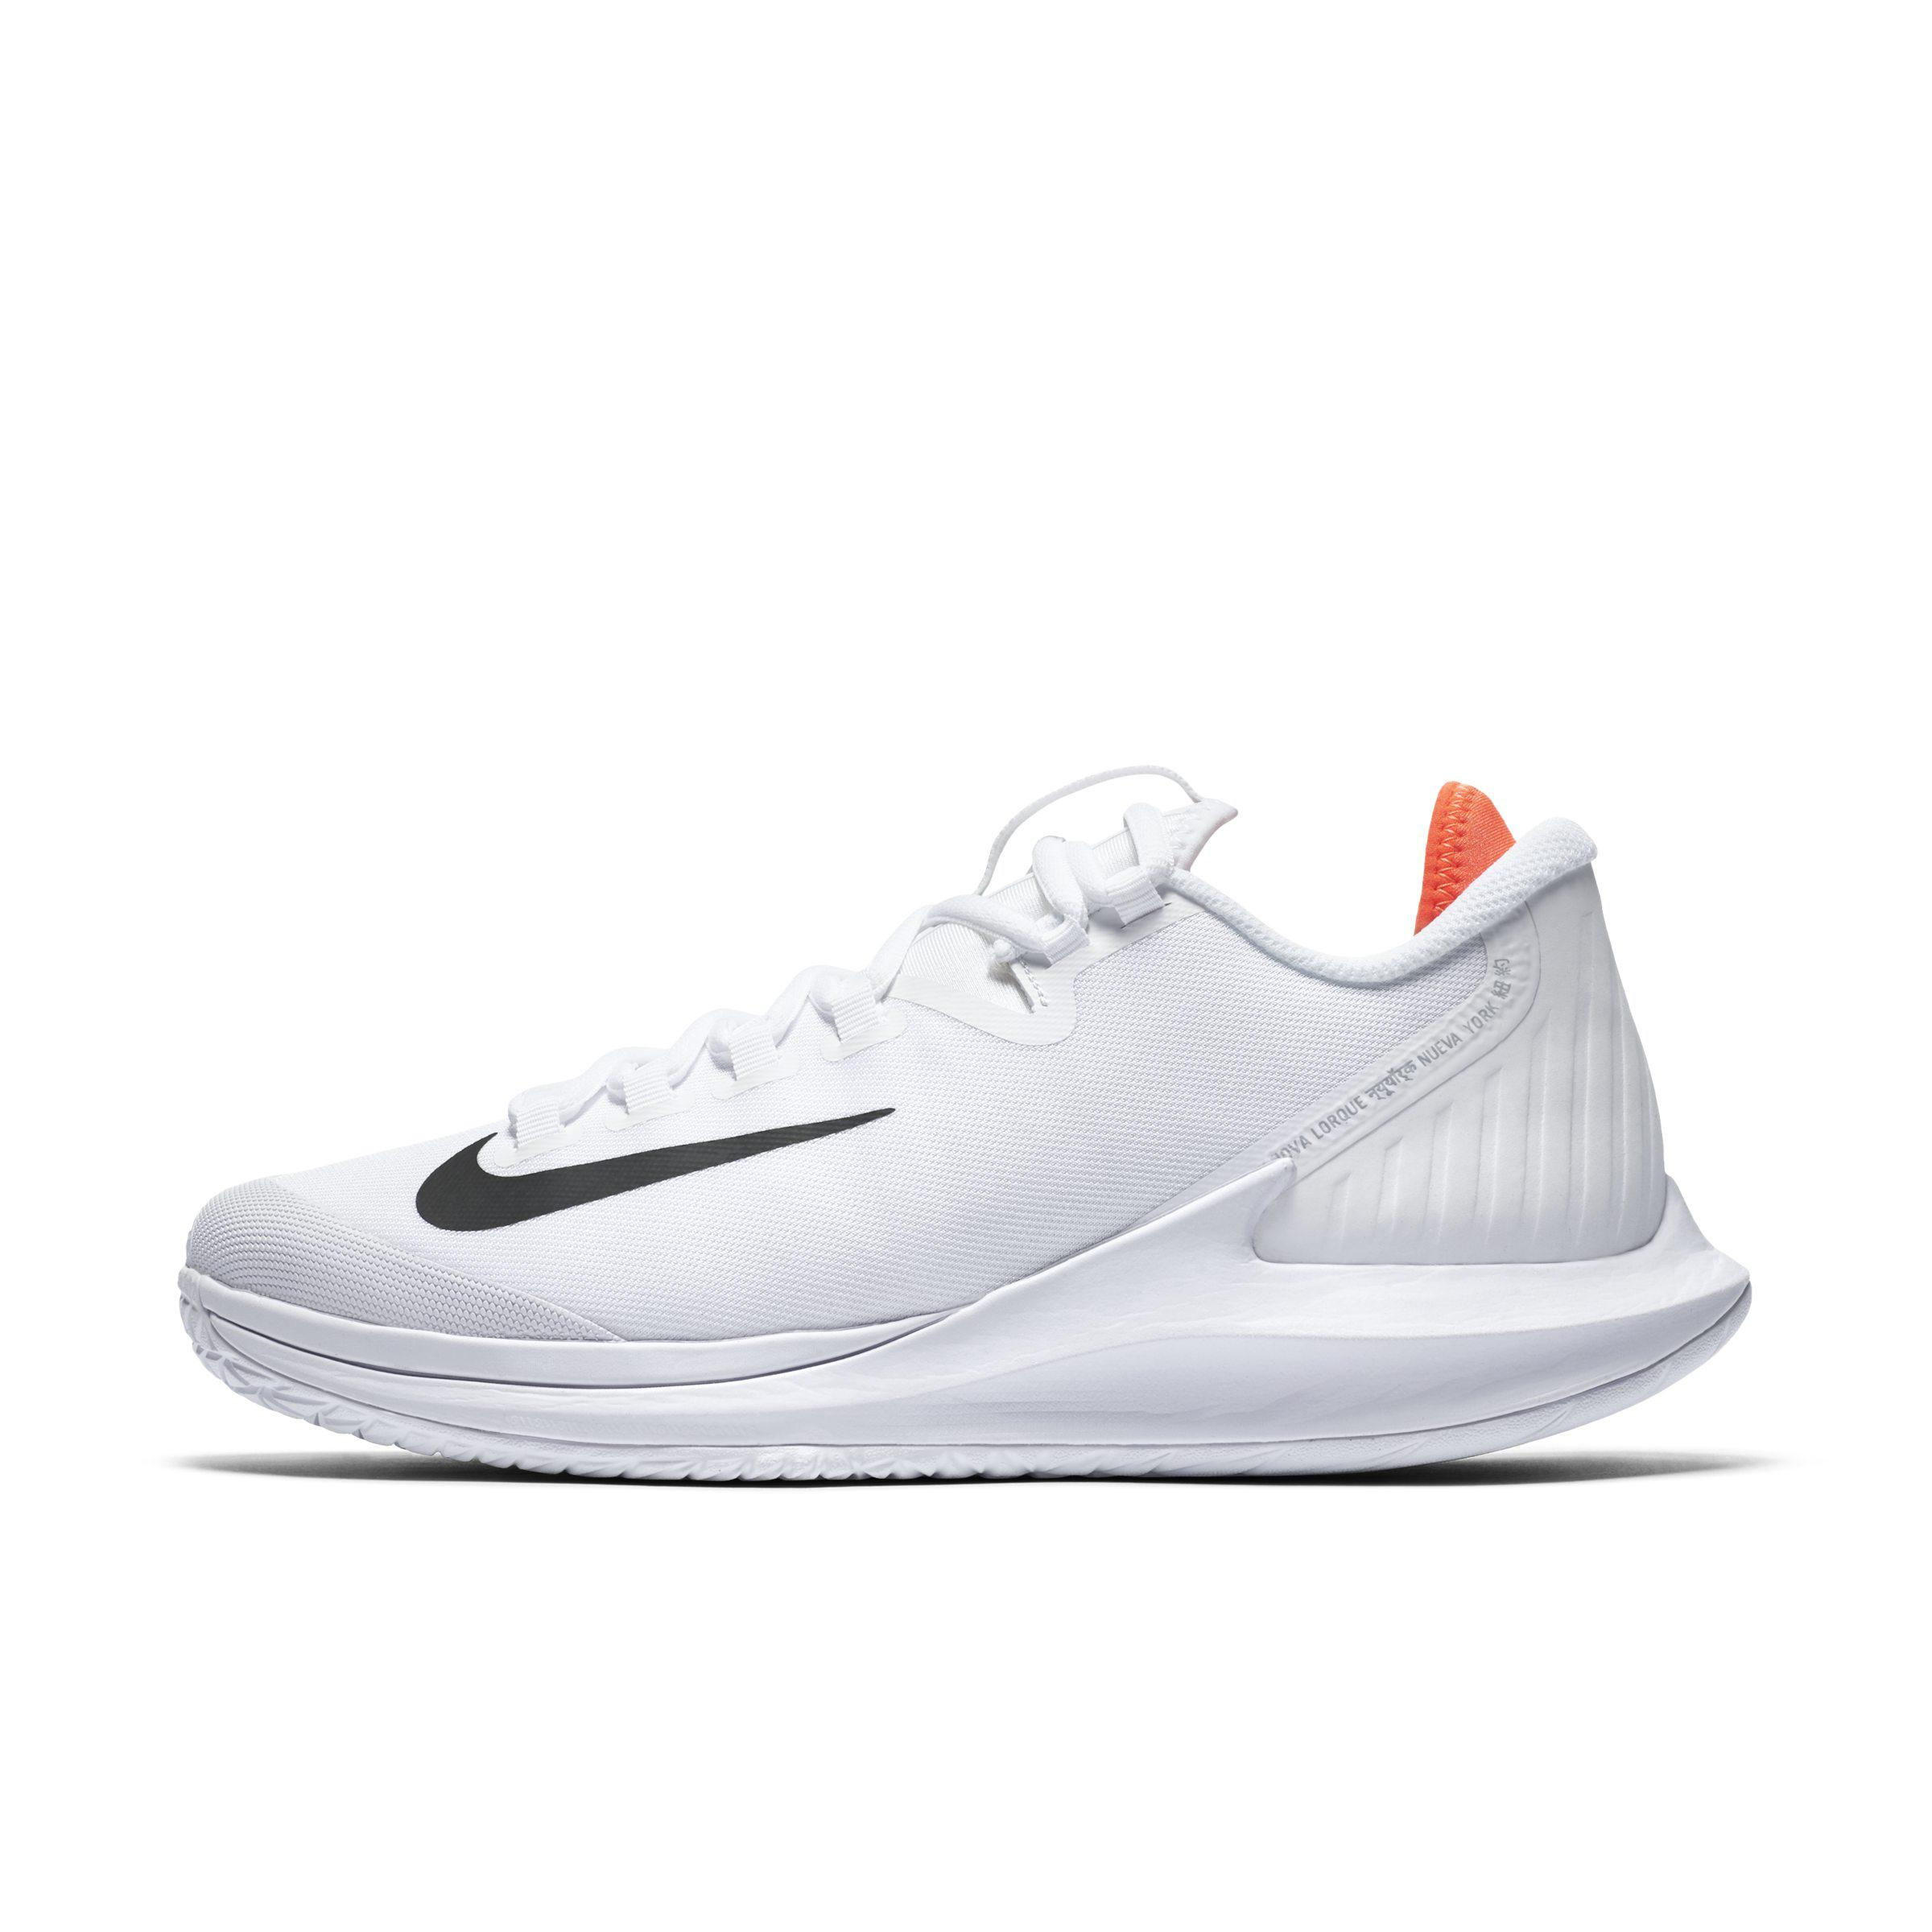 81a1dc3d49 Nike Court Air Zoom Zero Hard Court Tennis Shoe in White - Lyst